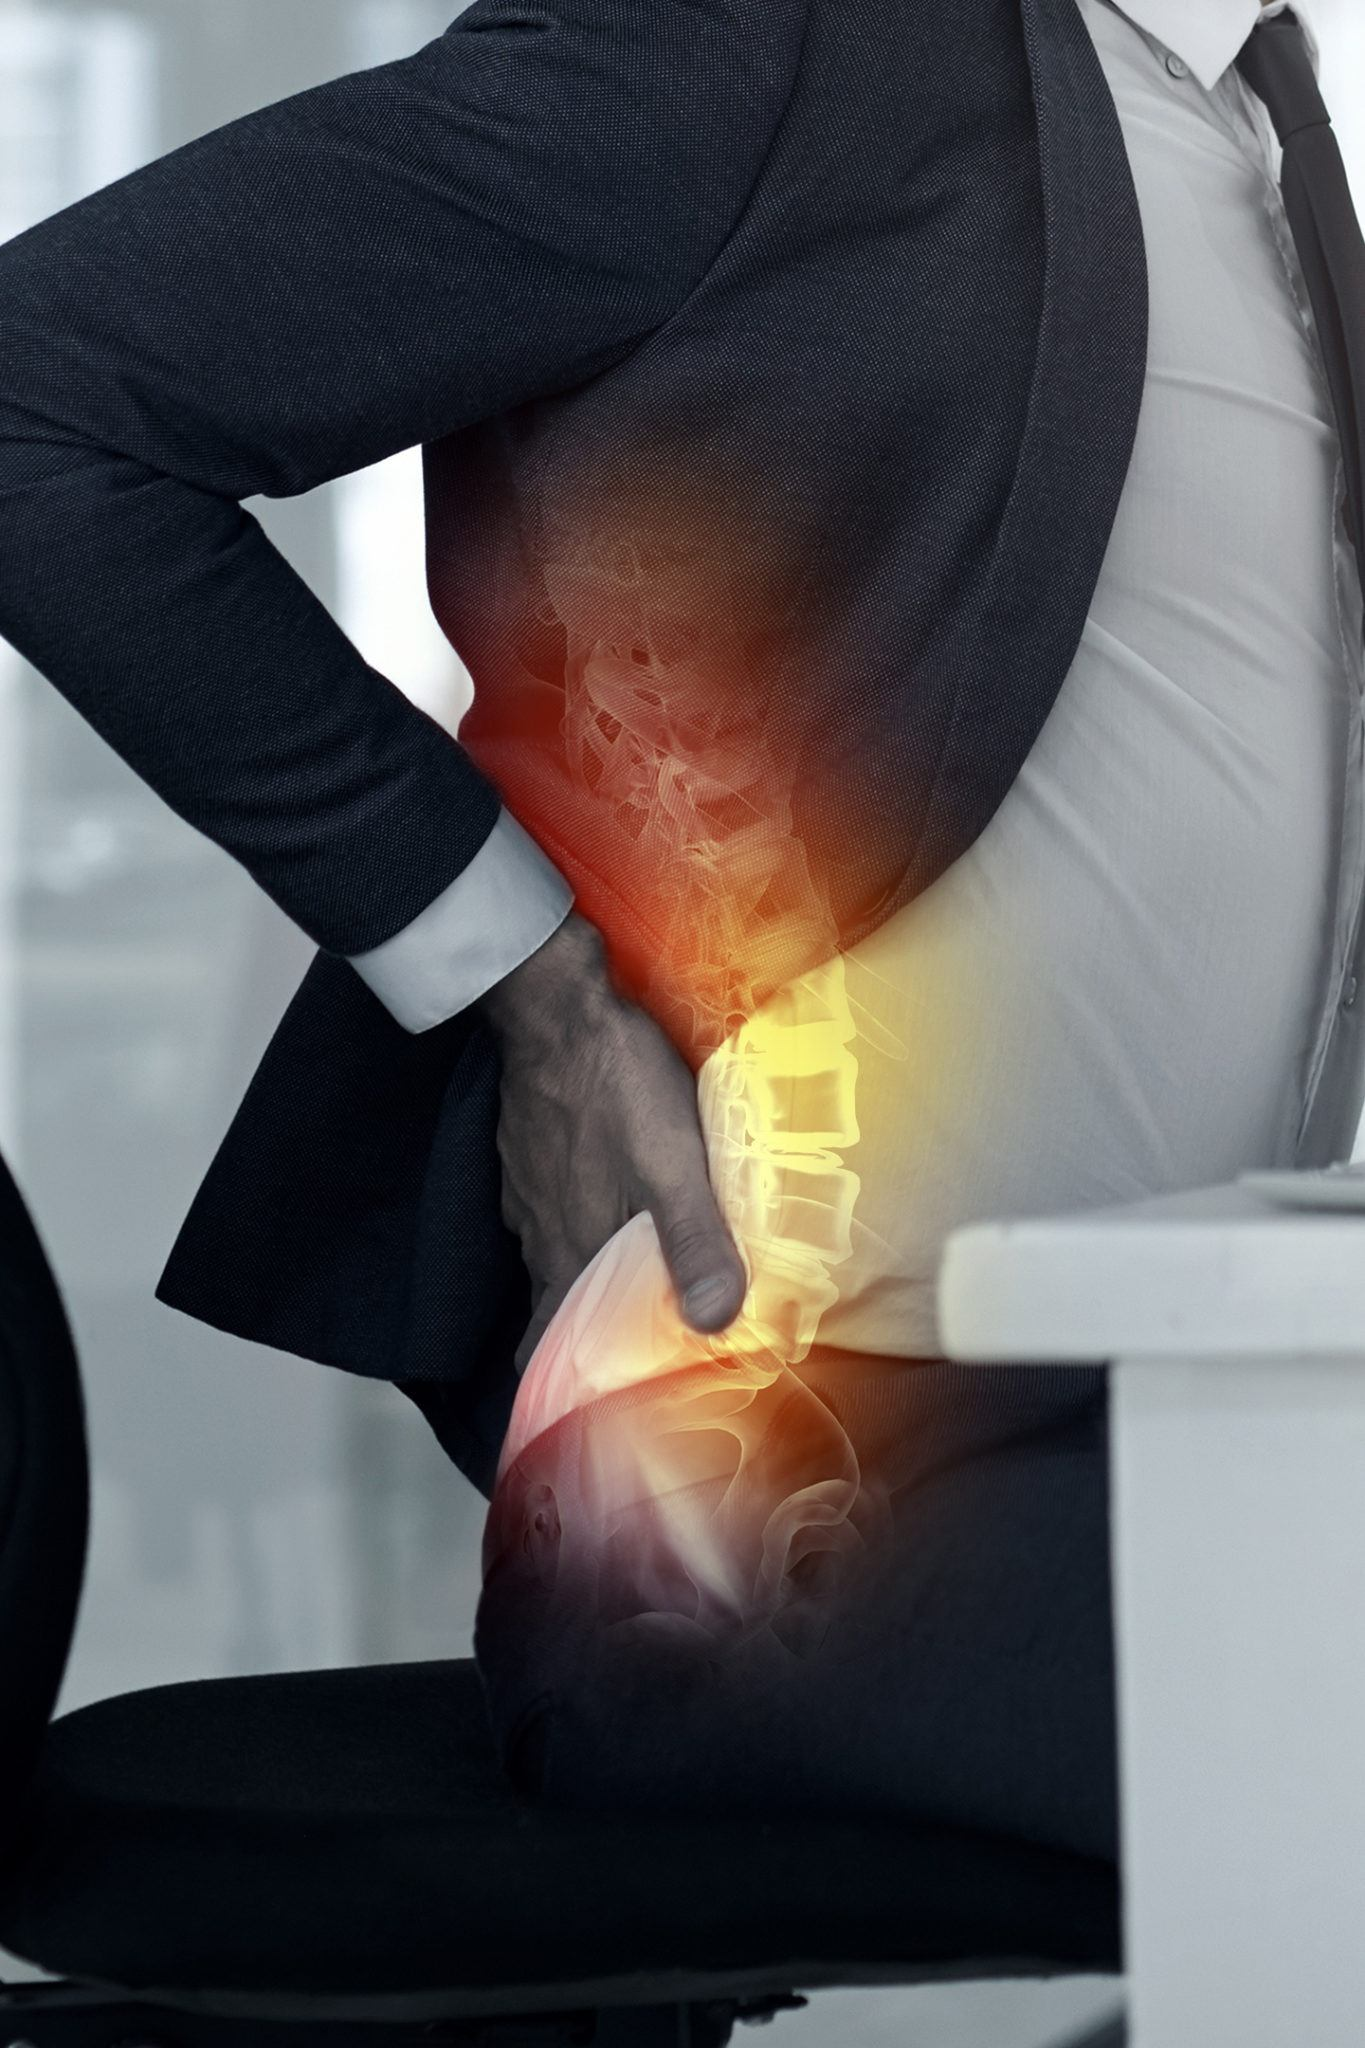 Lower Back Pain and Sciatica